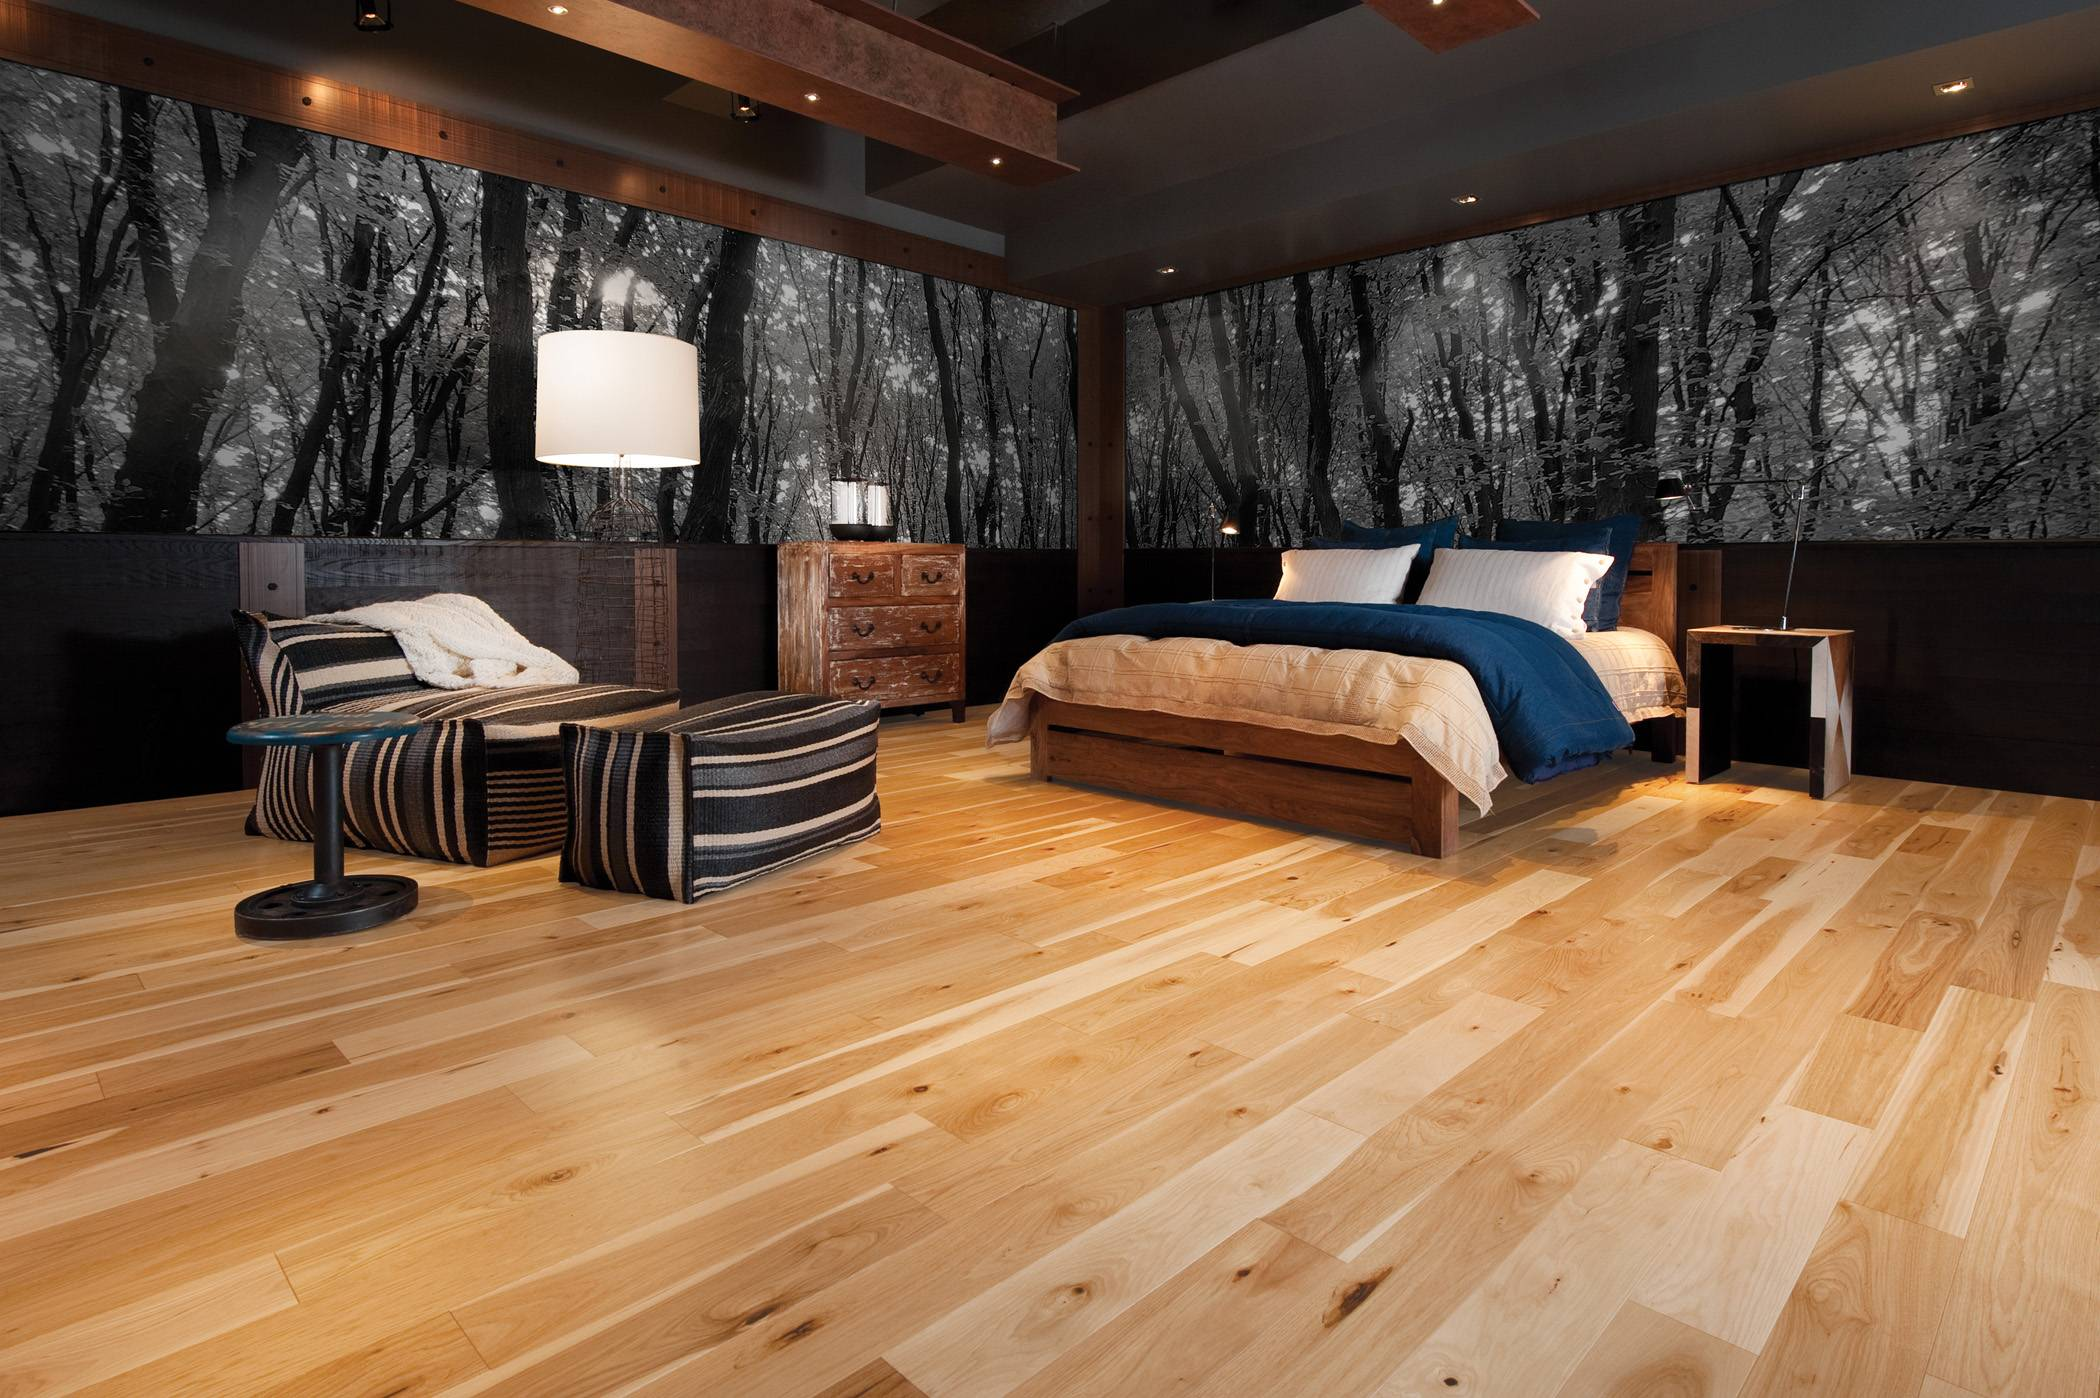 Best Wooden Flooring Bedroom Ideas House Plans 5050